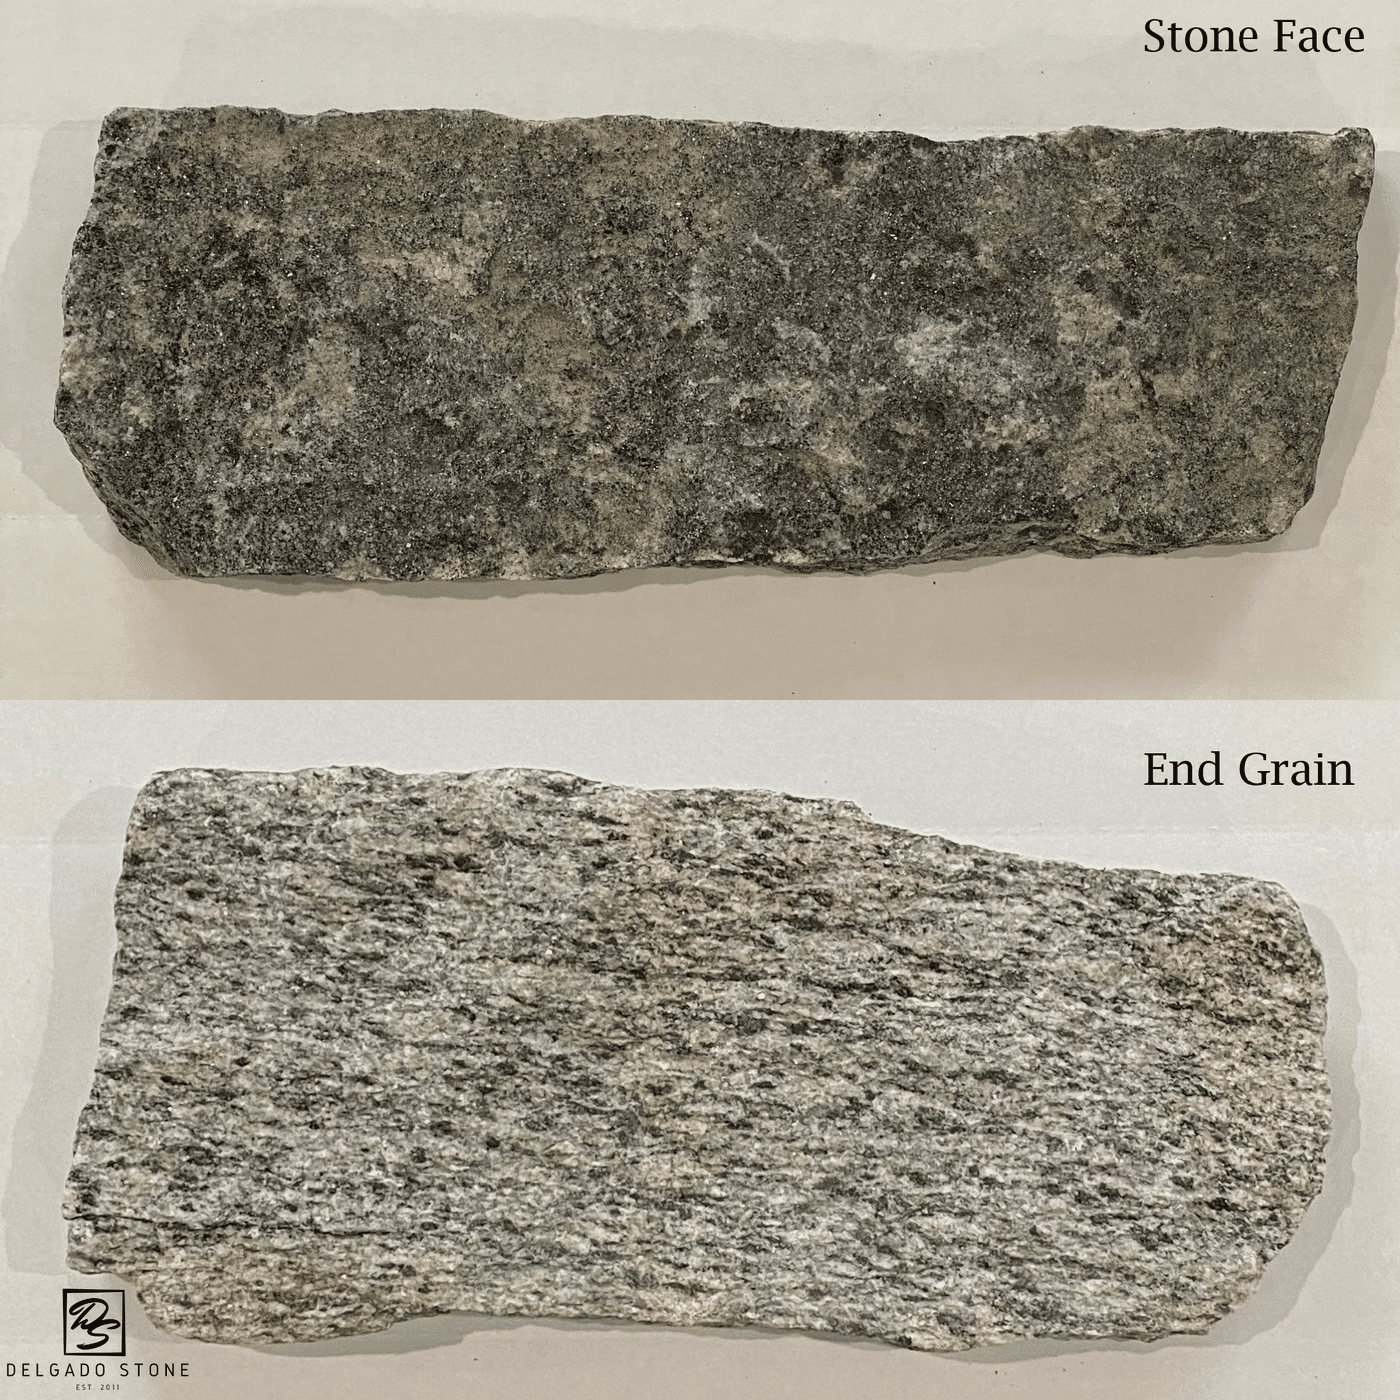 Stone face compared to end grain